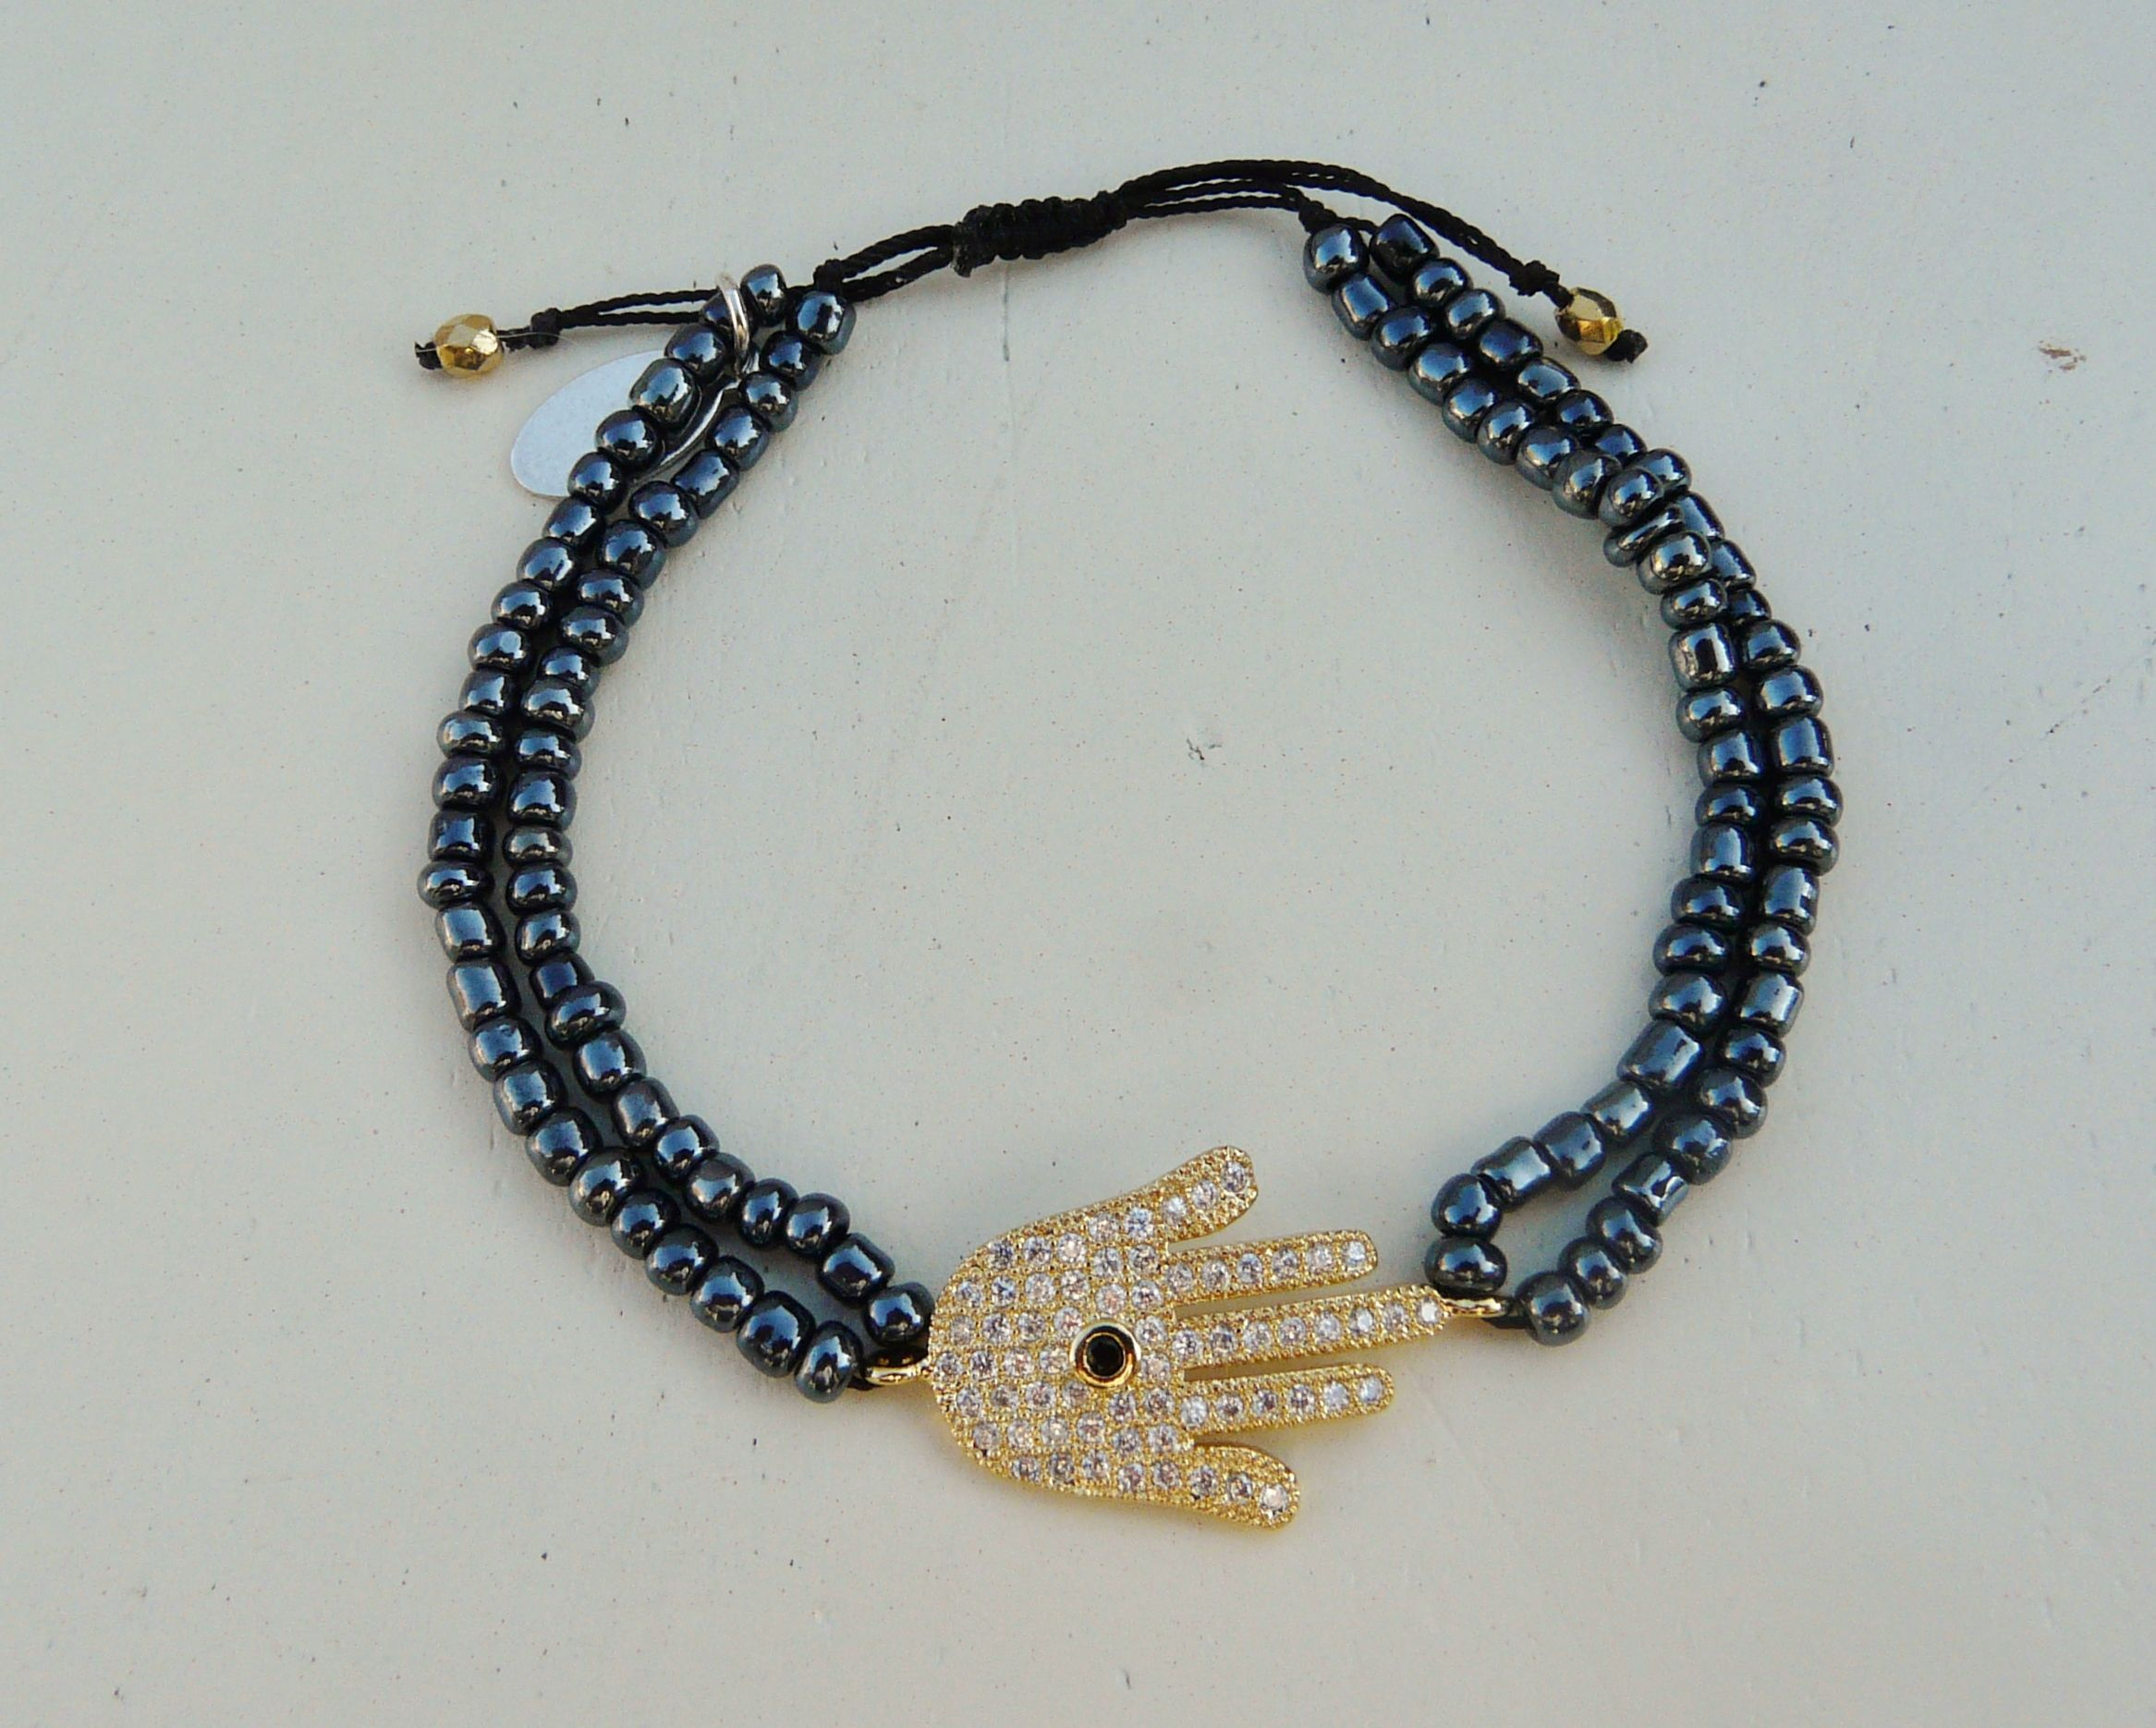 Gold hamsa hand charm and navy beads by NokoDesigns